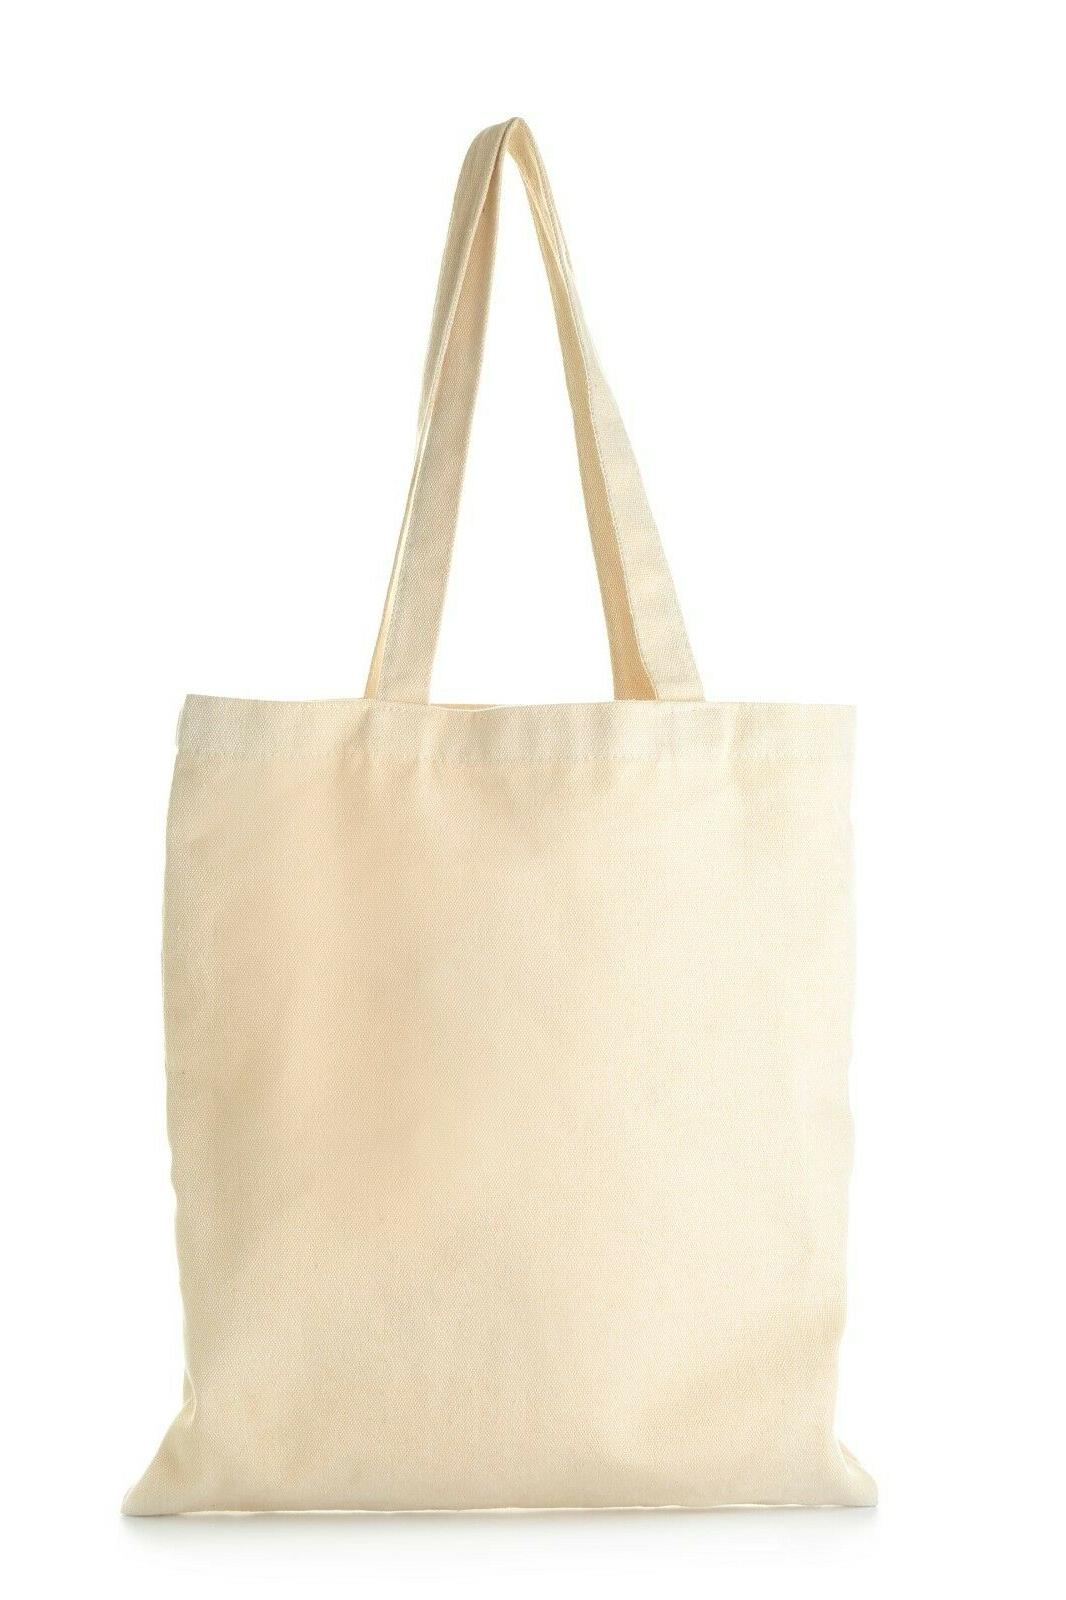 12 Canvas Bags in Decorating, Gifts, Favors